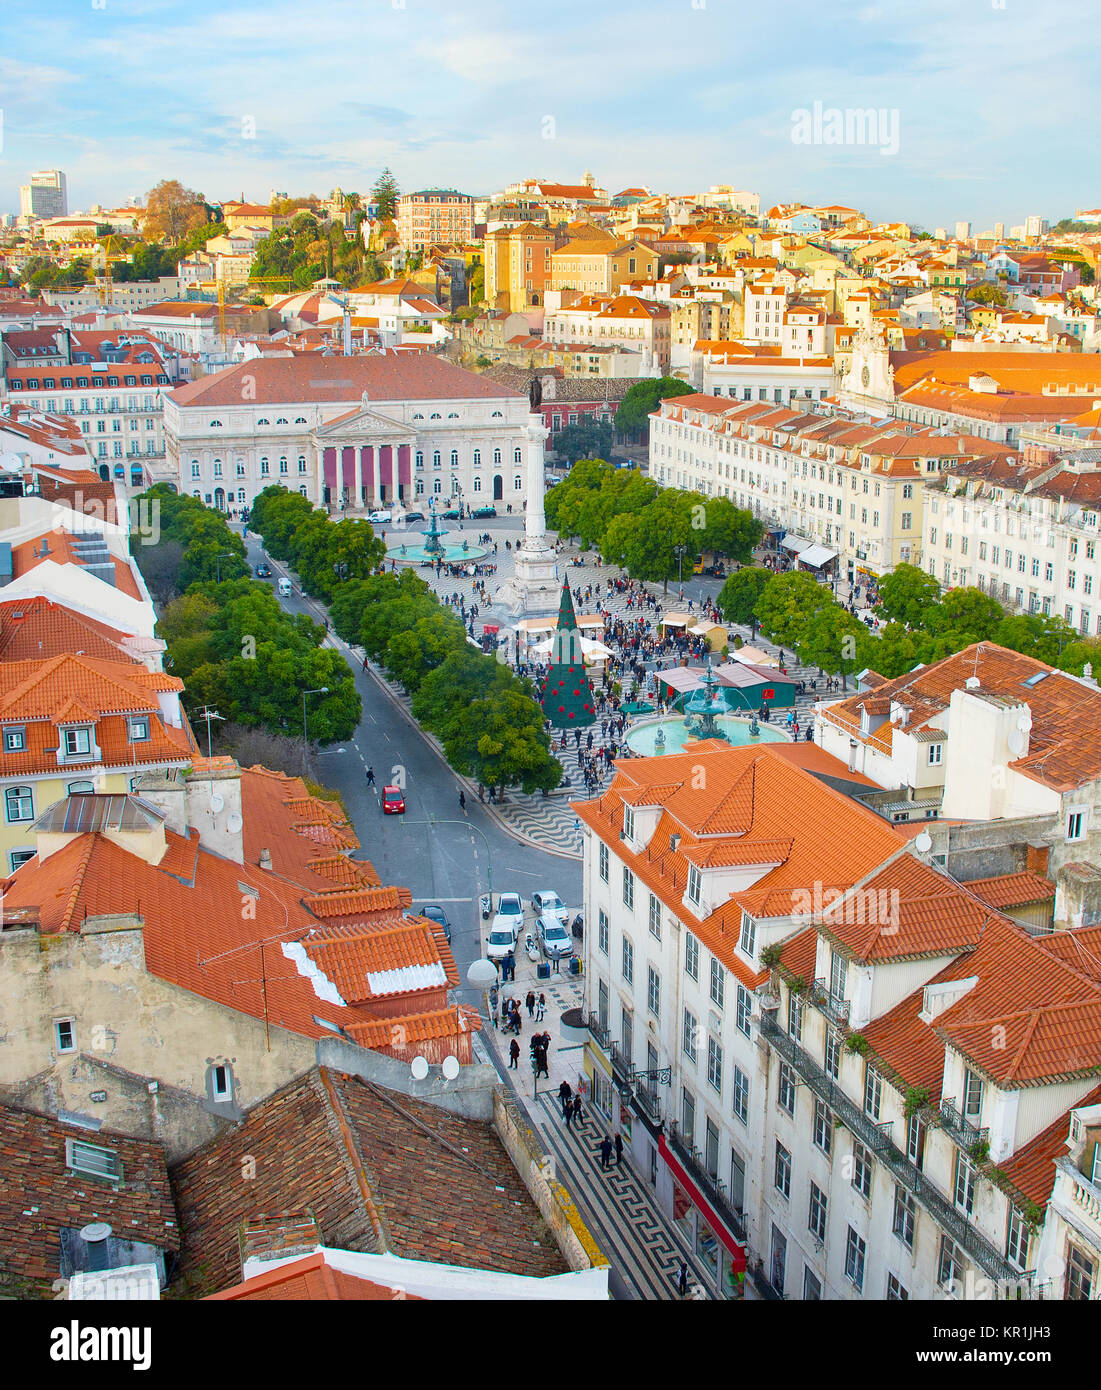 Aeriak view of Rossio square and Old Town of Lisbon, Portugal - Stock Image